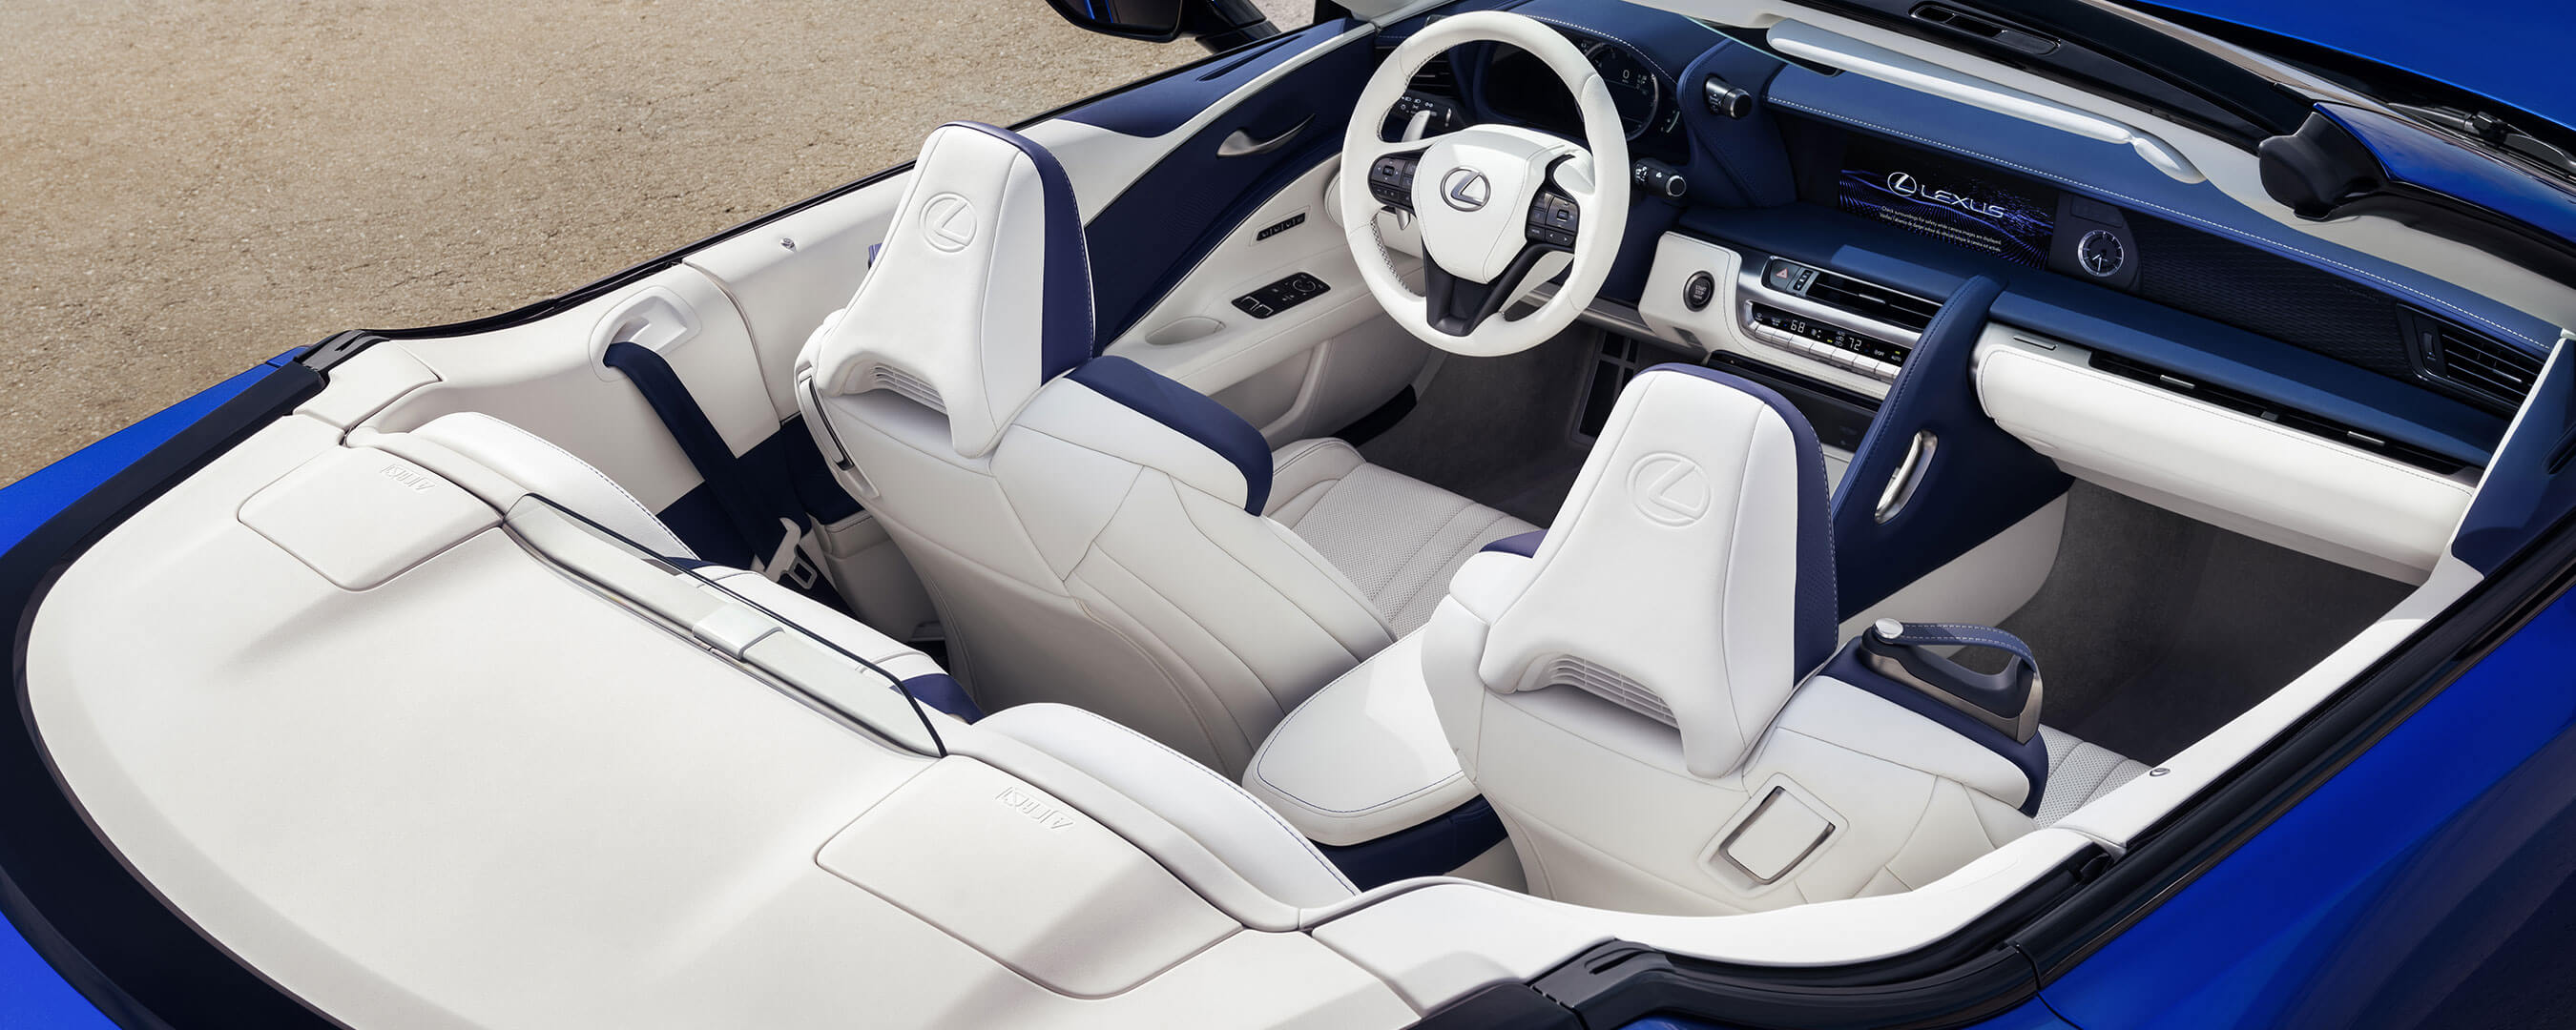 2020 lexus lc convertible experience interior back